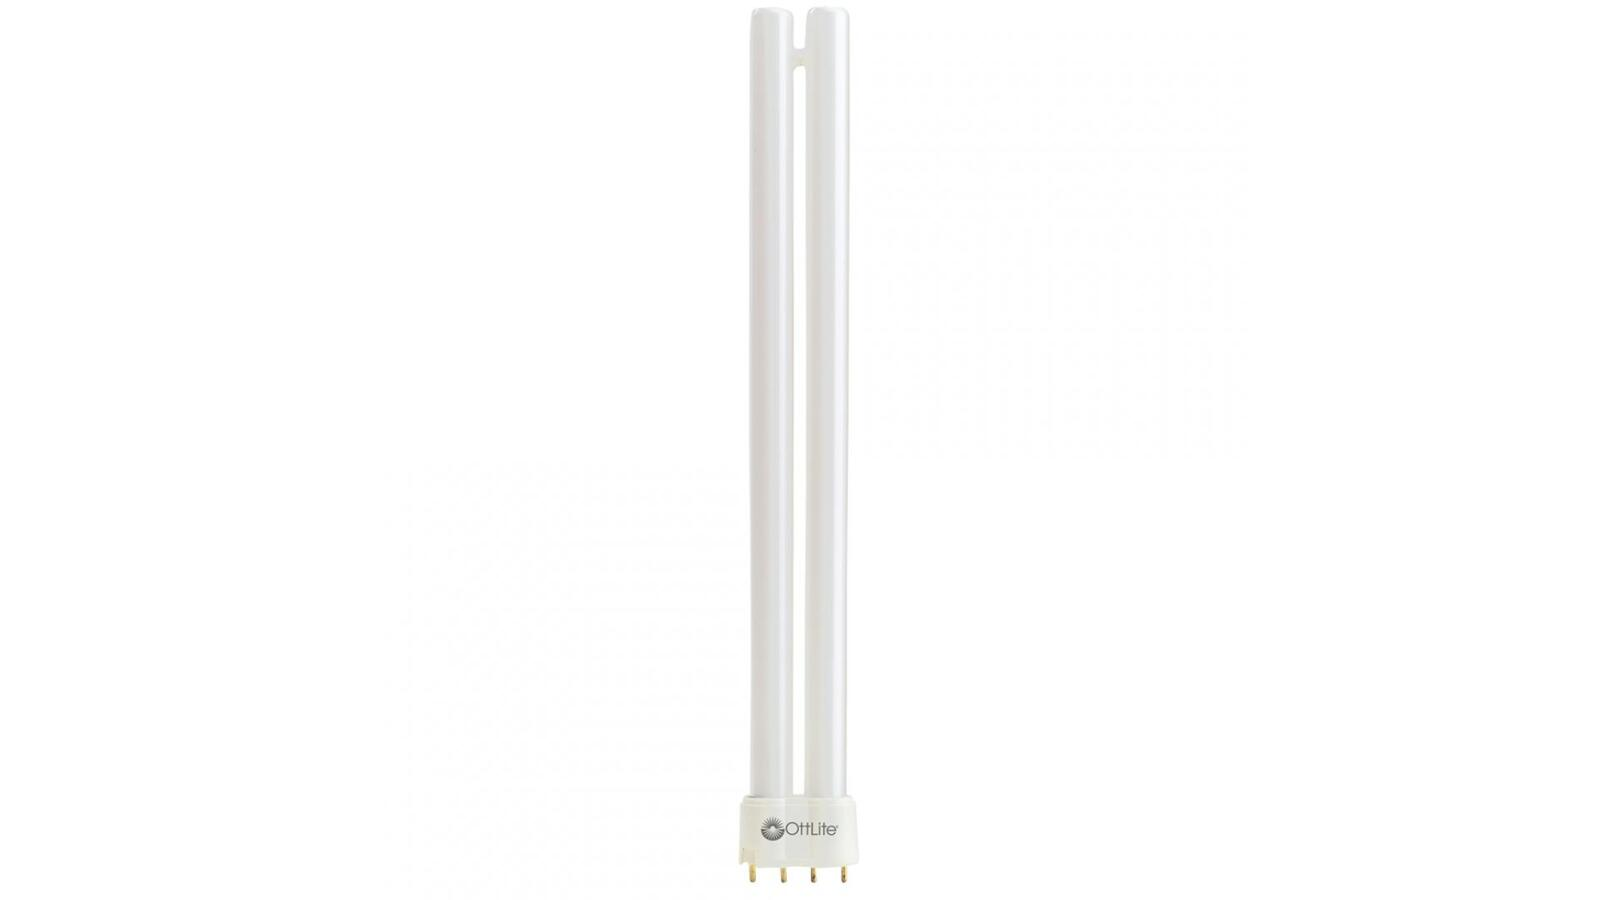 Ott Lite 24w Replacement Tube Bulb For 24w Lamps Ebay: ott light bulb